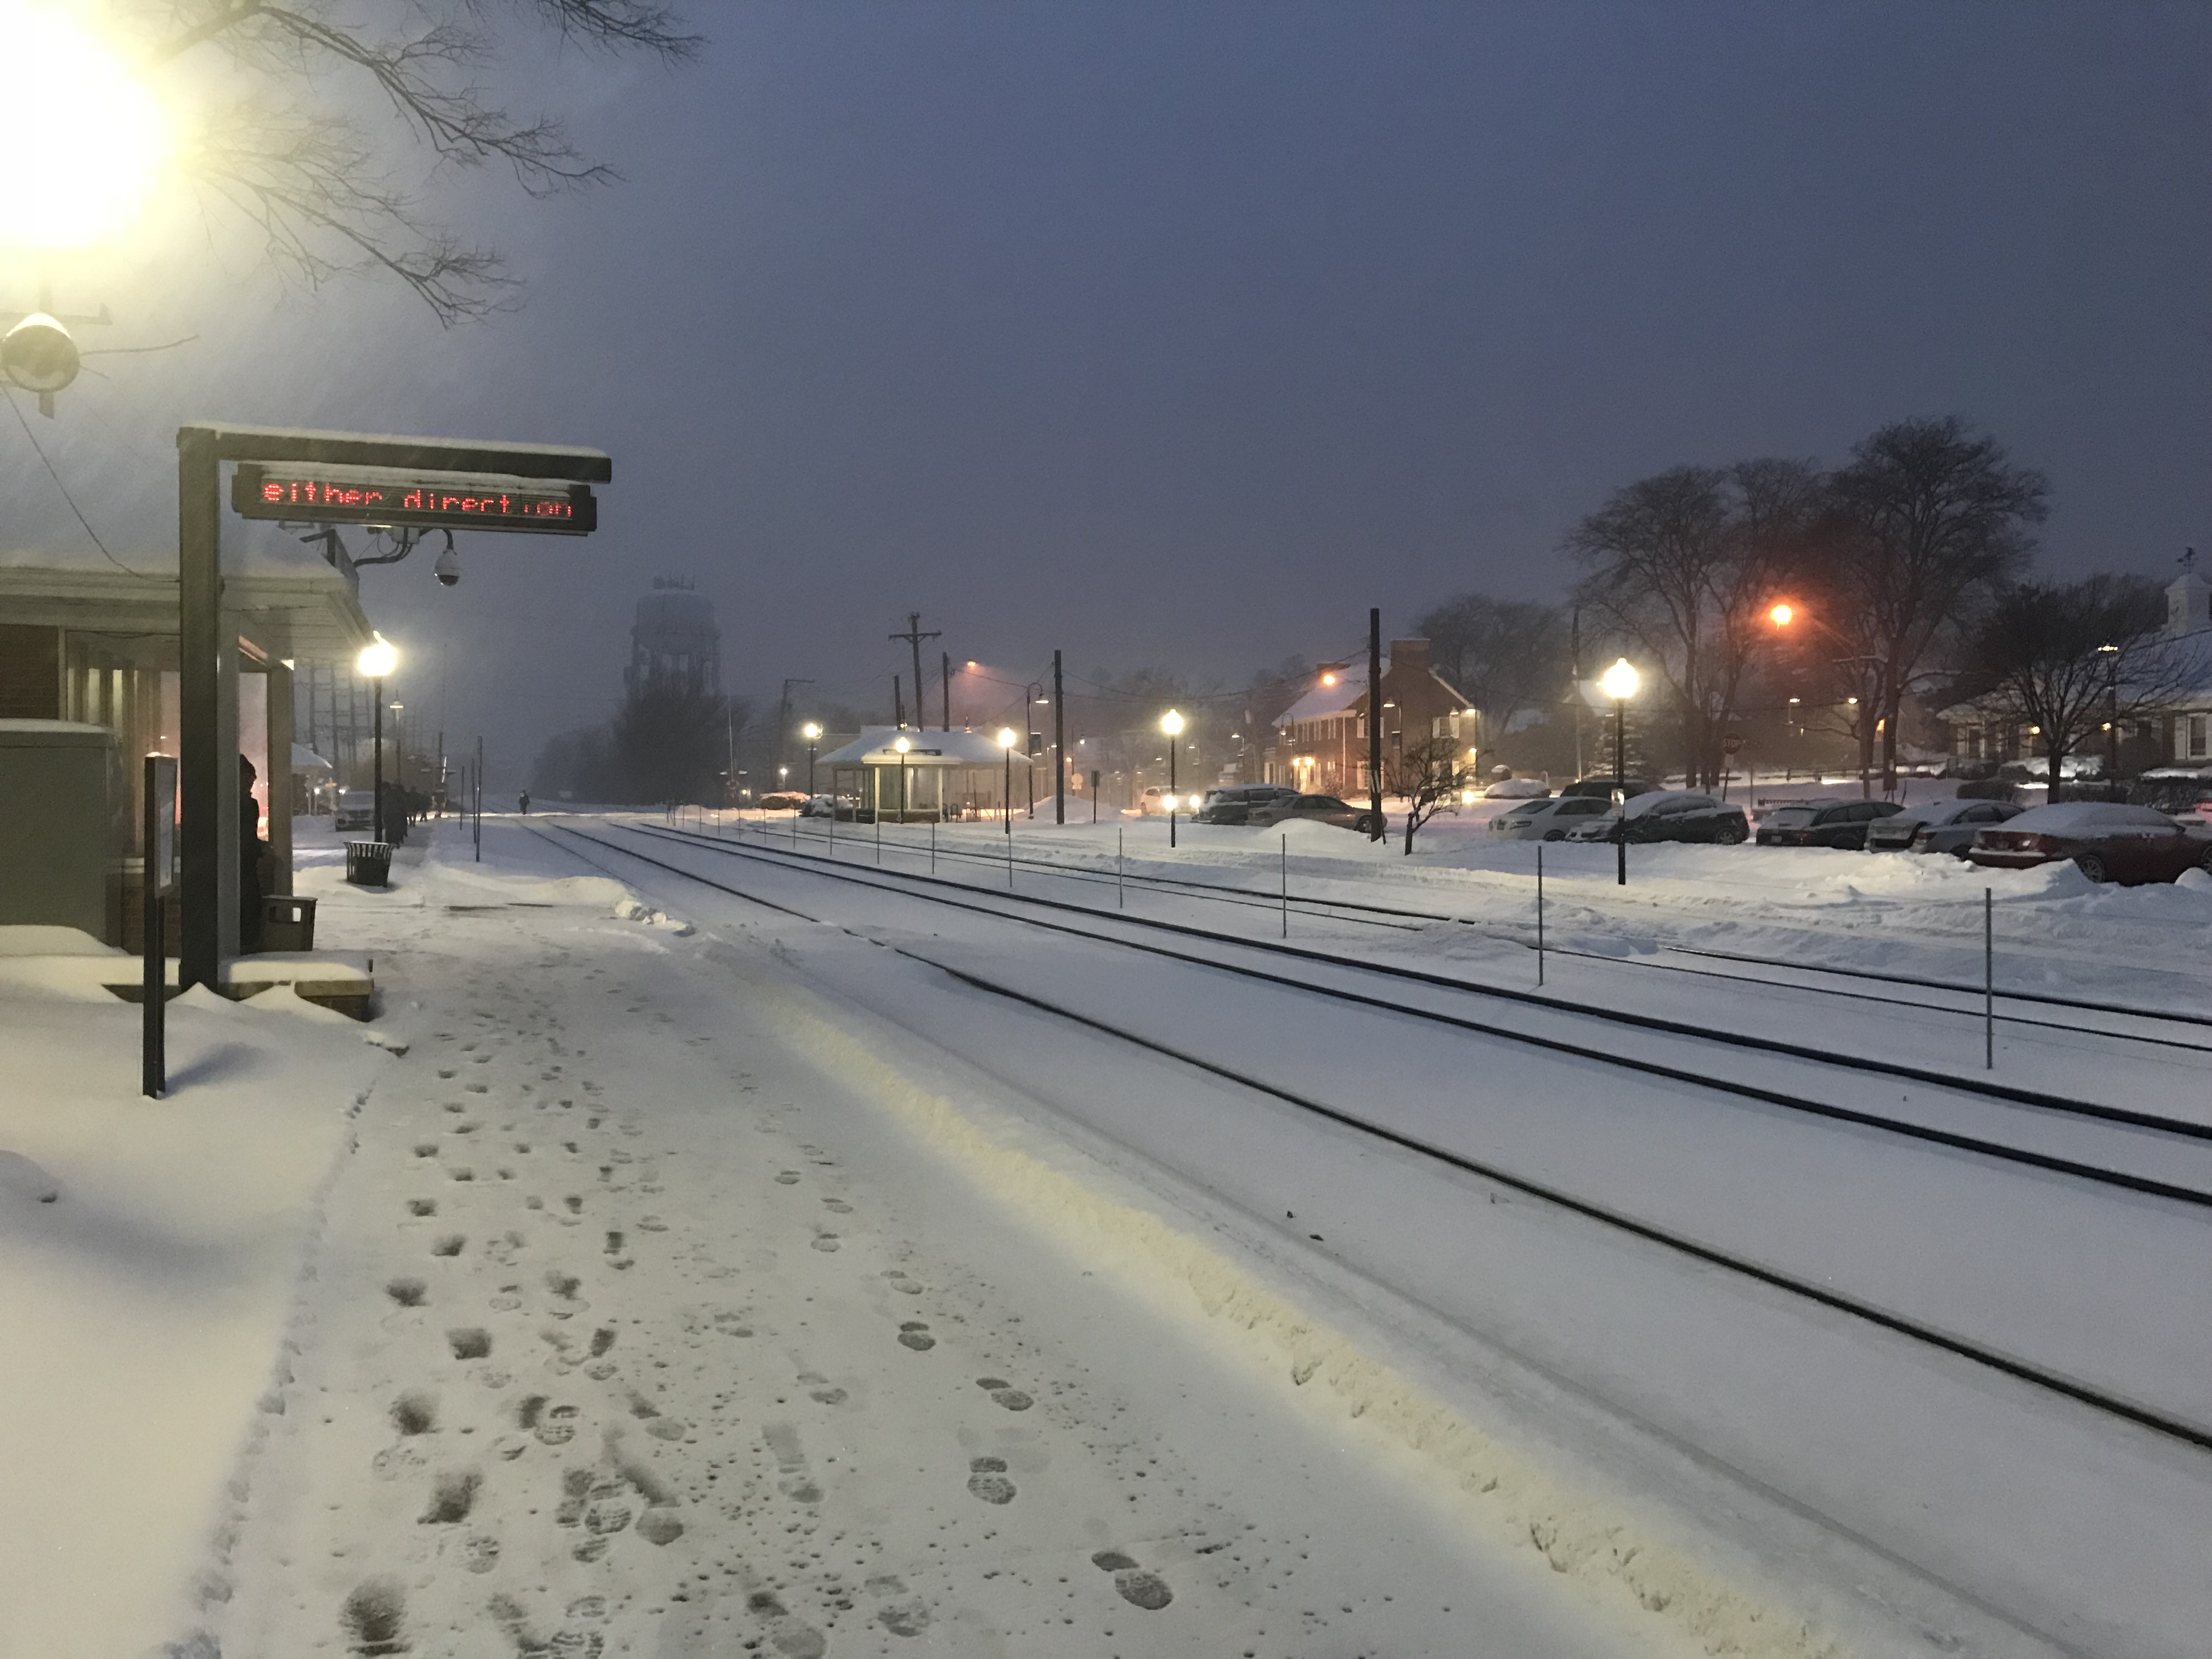 <div class='meta'><div class='origin-logo' data-origin='WLS'></div><span class='caption-text' data-credit='Jeff Marchese'>Snow in Clarendon Hills</span></div>